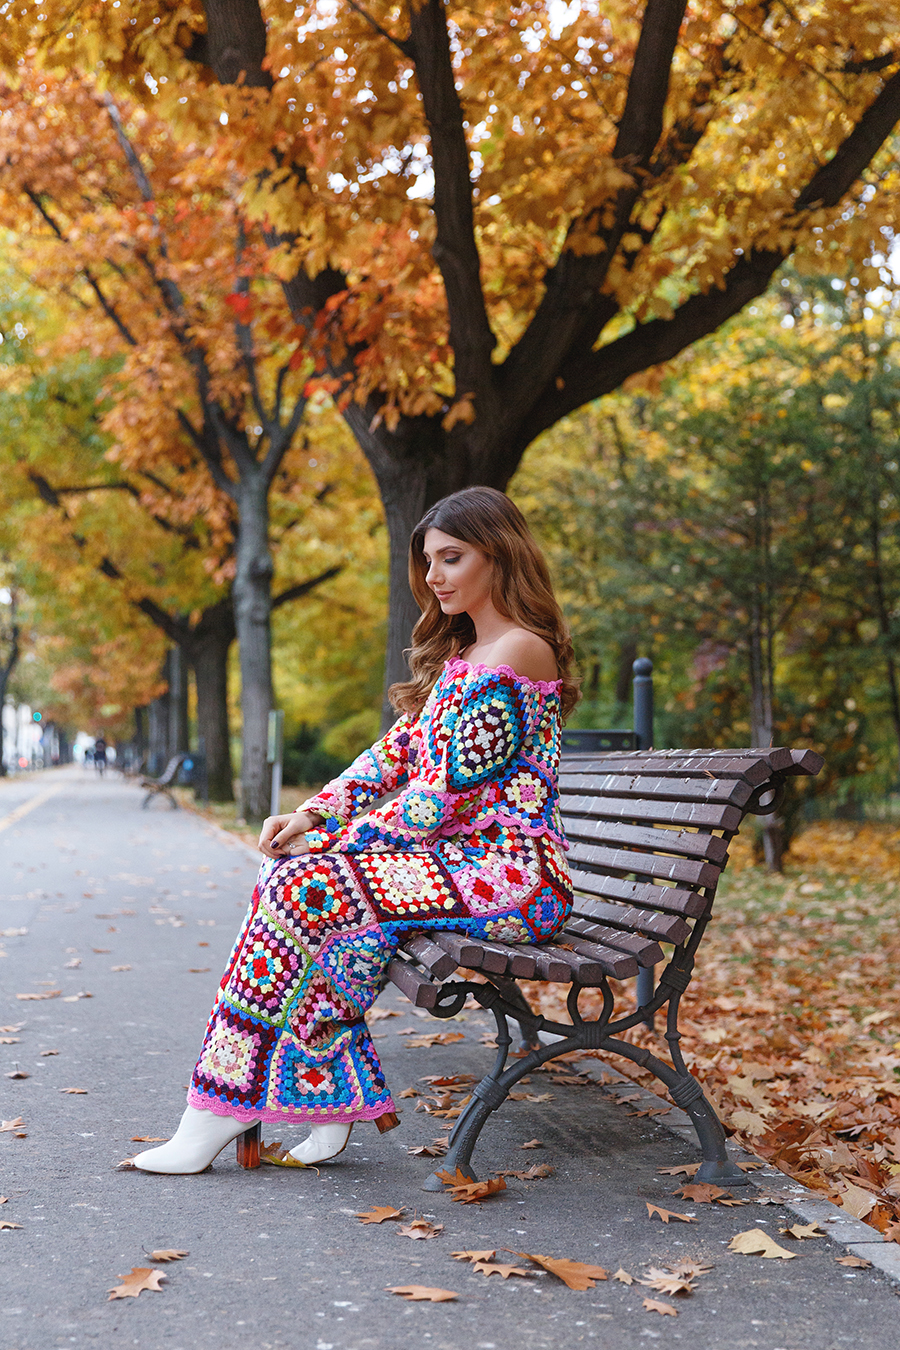 larisa costea, larisa costea blog, the mysterious girl, the mysterious girl blog, fashion blog, blogger, fashion, fashionista, it girl, travel blog, travel, traveler, ootd, lotd, outfit inspiration,look of the day,outfit of the day,what to wear, dressfo, dress fo, dezzal,crochet, crochetdress, crochet set, co-ord, coords, top and skirt,long skirt,off the shoulder top, colourful, colorful, vivid colours, fallleaves, autumn, fall, fall outfit, sea of leaves, gold leaves, leaf, red leaves, yellow leaves, bucharest, fall in bucharest, toamna in bucuresti, hereastrau,kiseleff, frune aramii, aurii, retail theraphy, shopping online, kurt geiger,kurt geiger booties,ankle boots, white ankle boots, transparent heel, strut